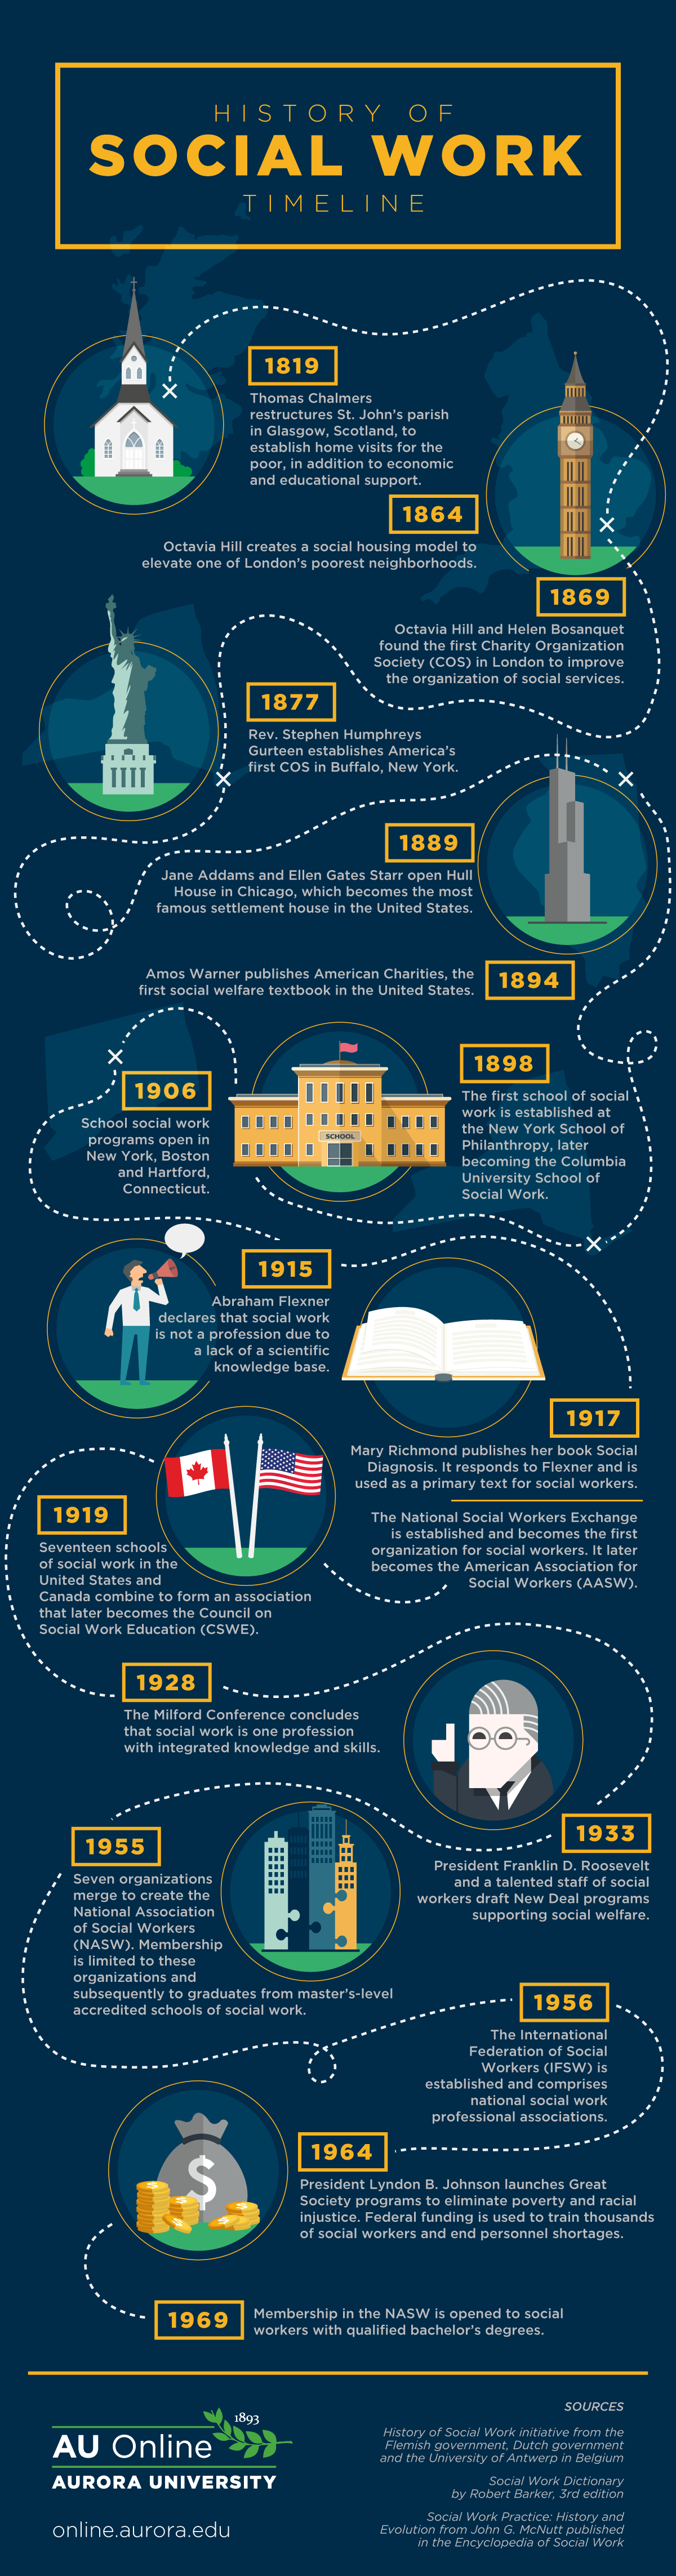 History Of Social Work Timeline #Infographic